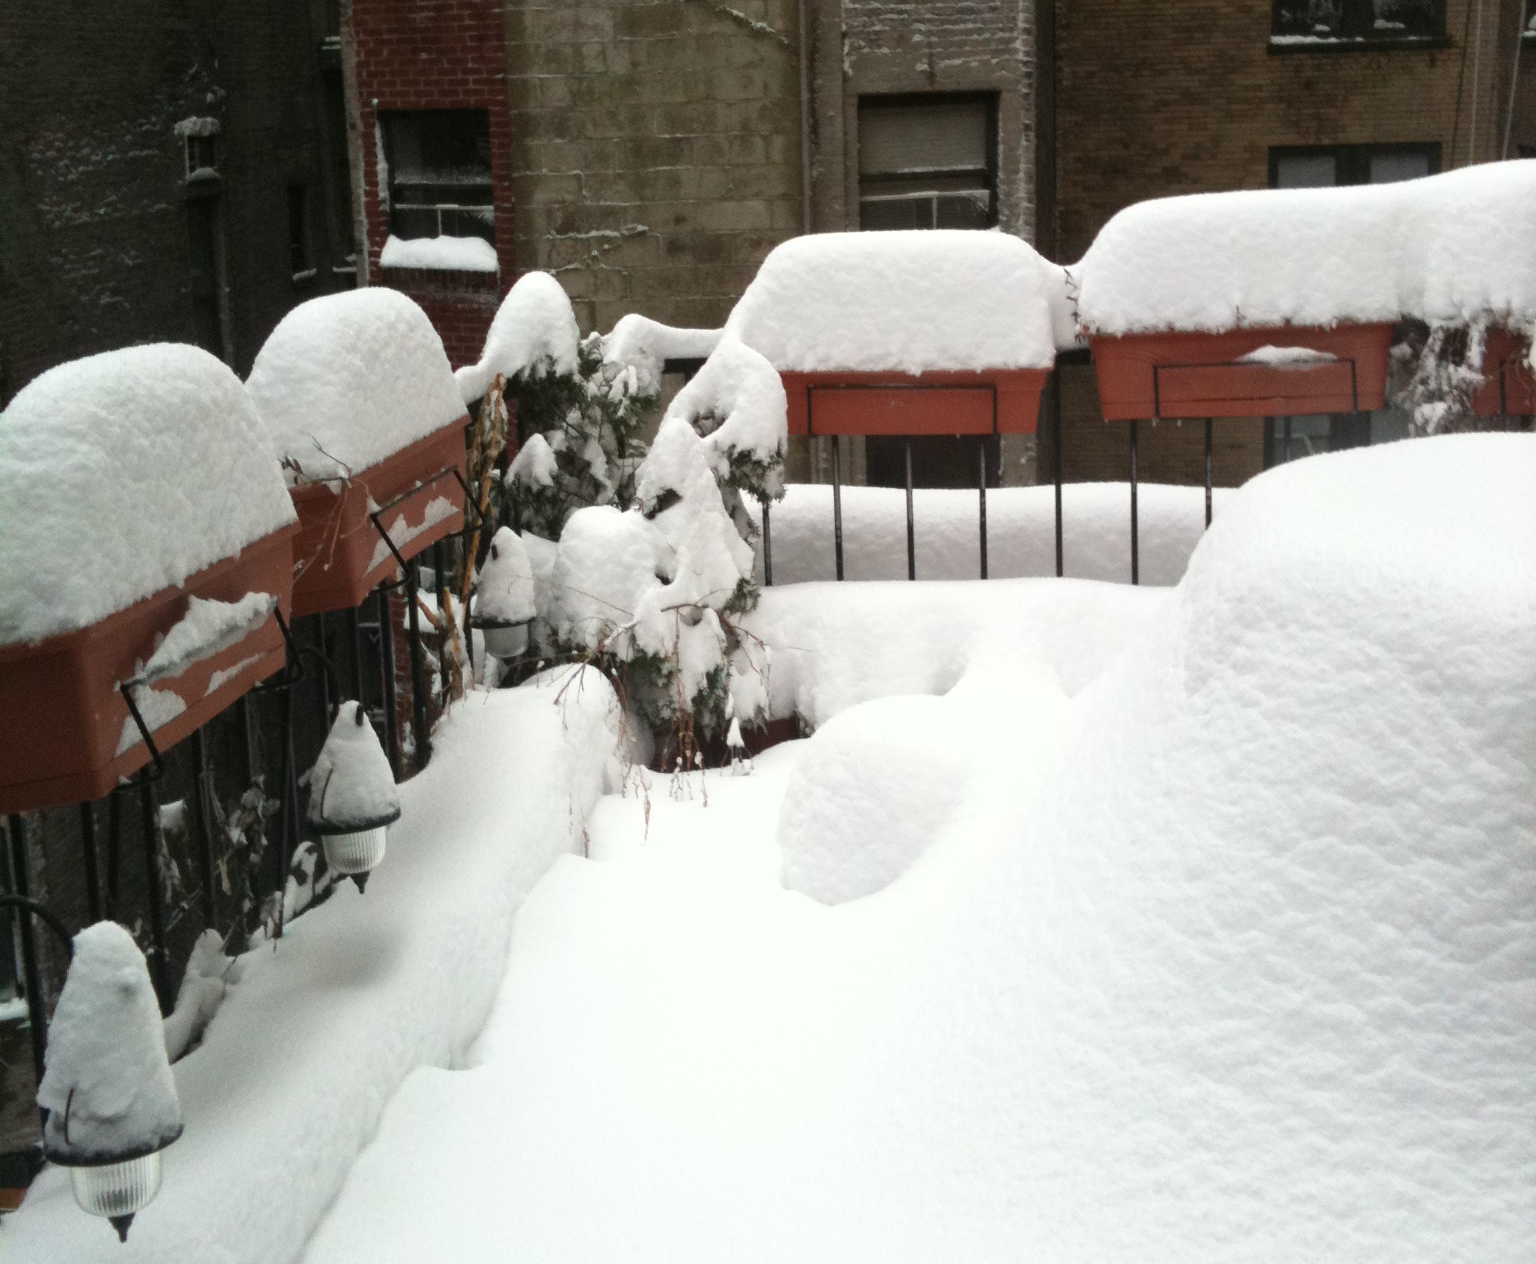 It's a snow day in NYC at 258 W 93rd Street.